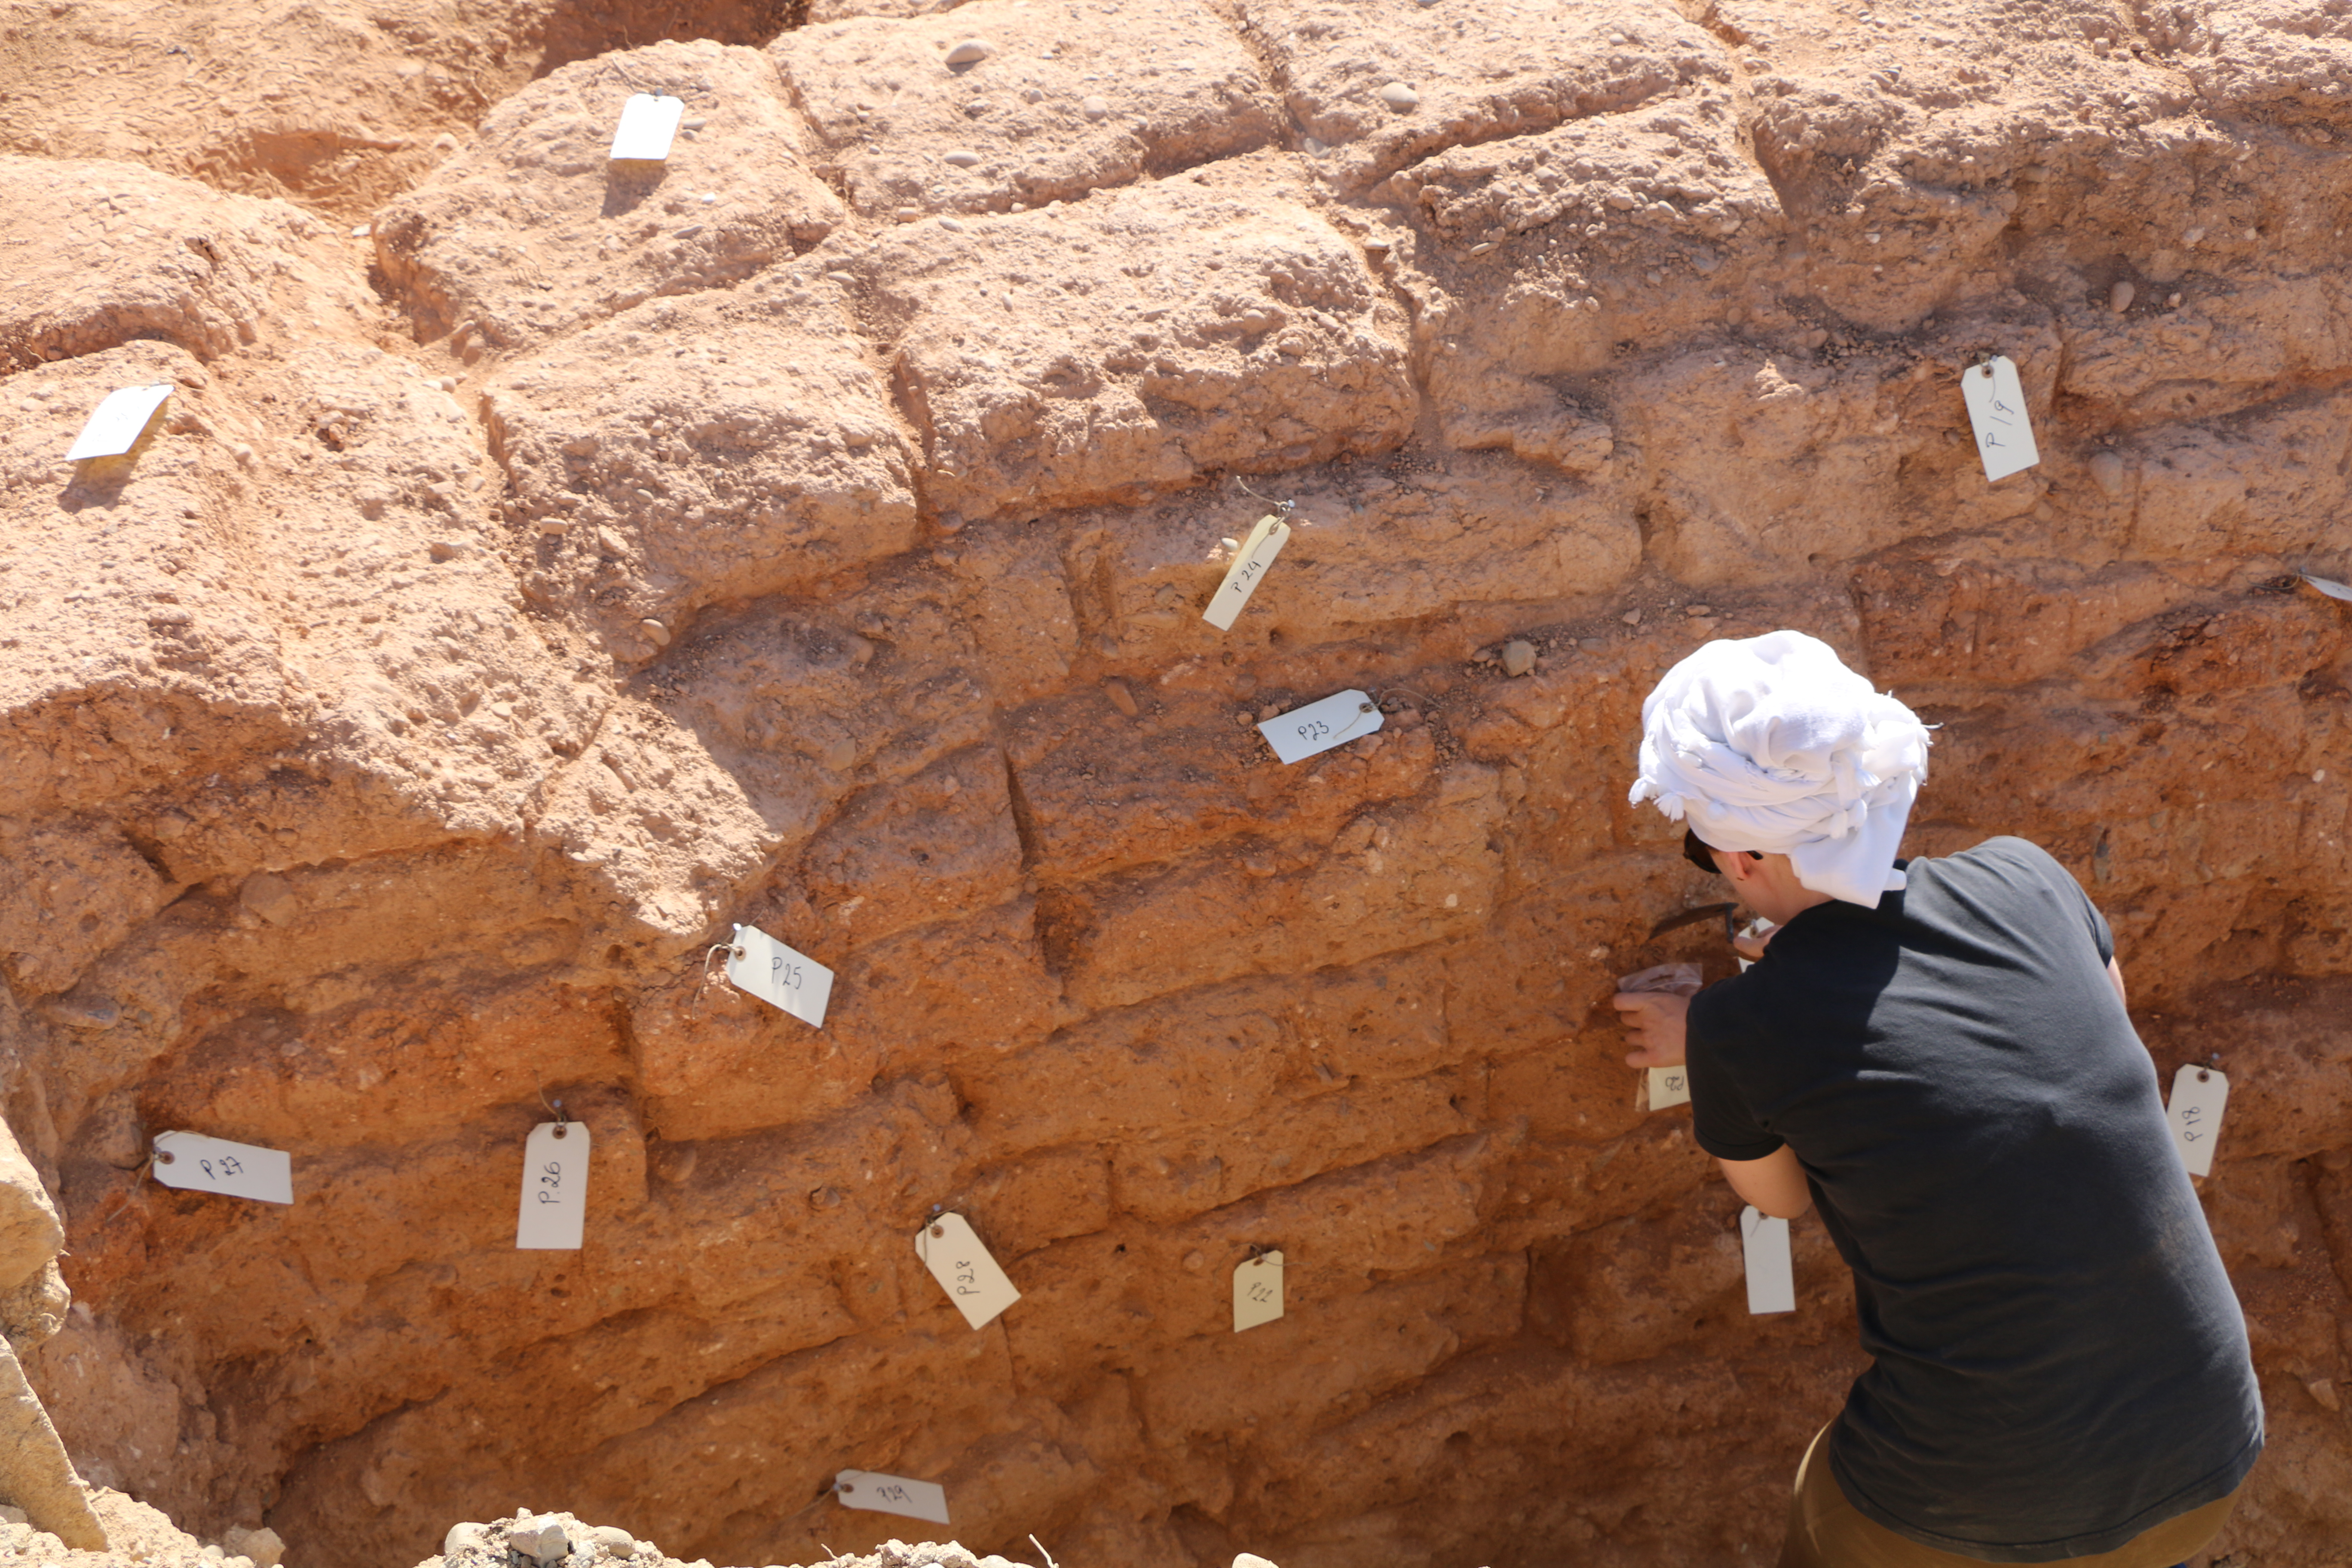 9. Marta Lorenzon taking samples of the mudrick wall from Laona